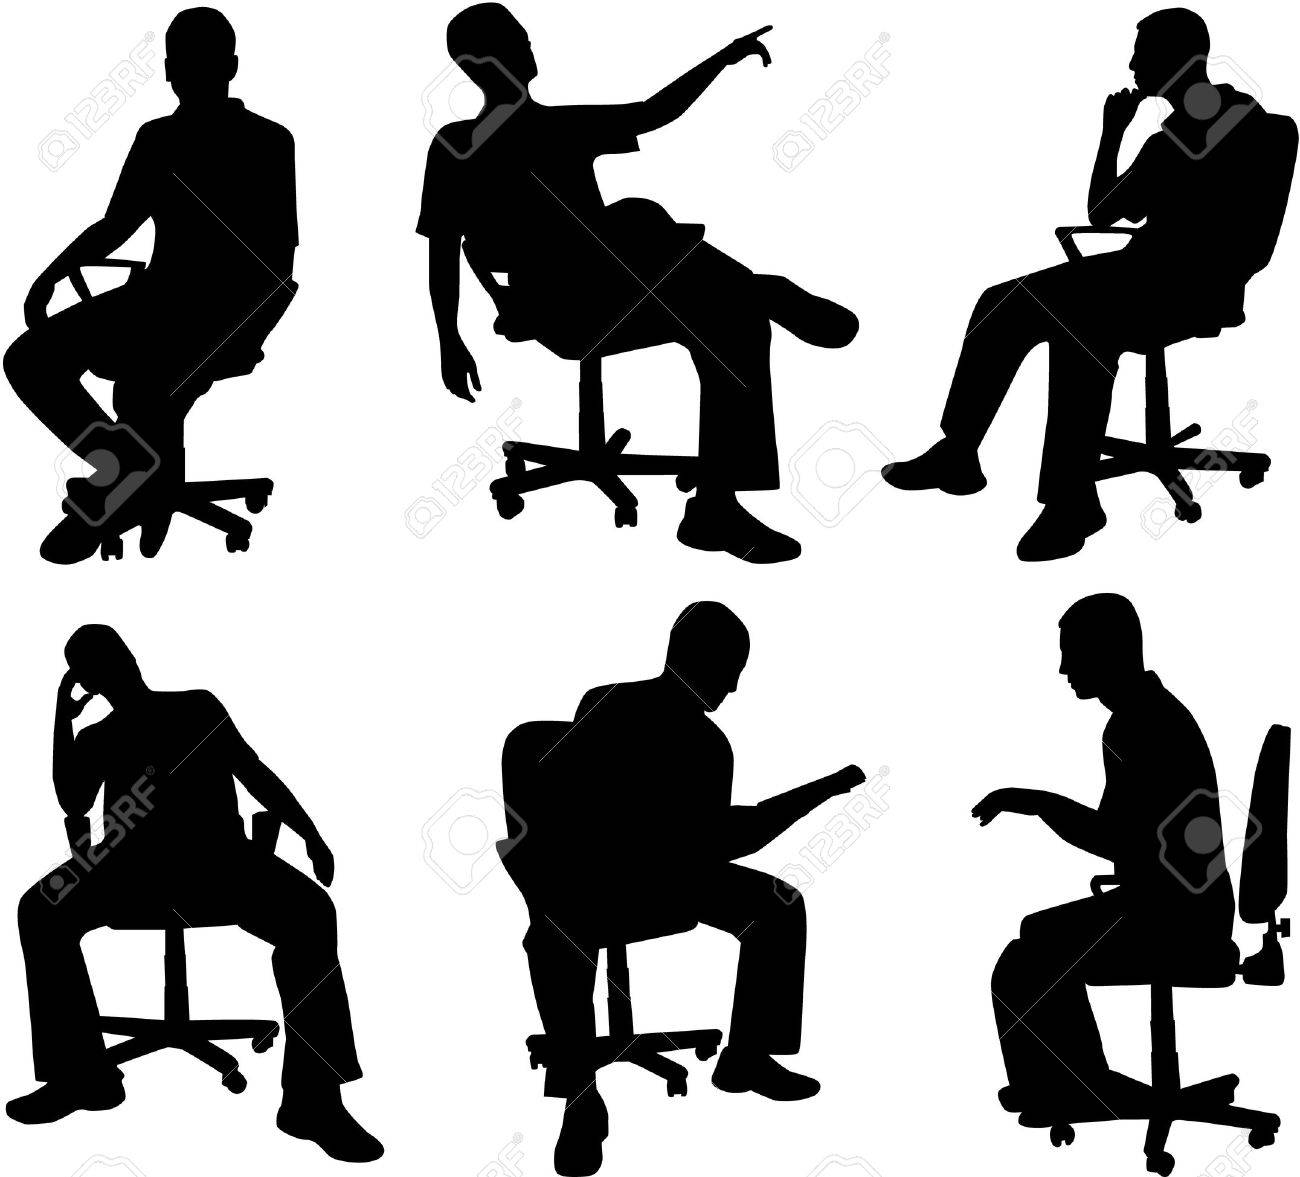 6,330 Sitting Standing Stock Vector Illustration And Royalty Free ...